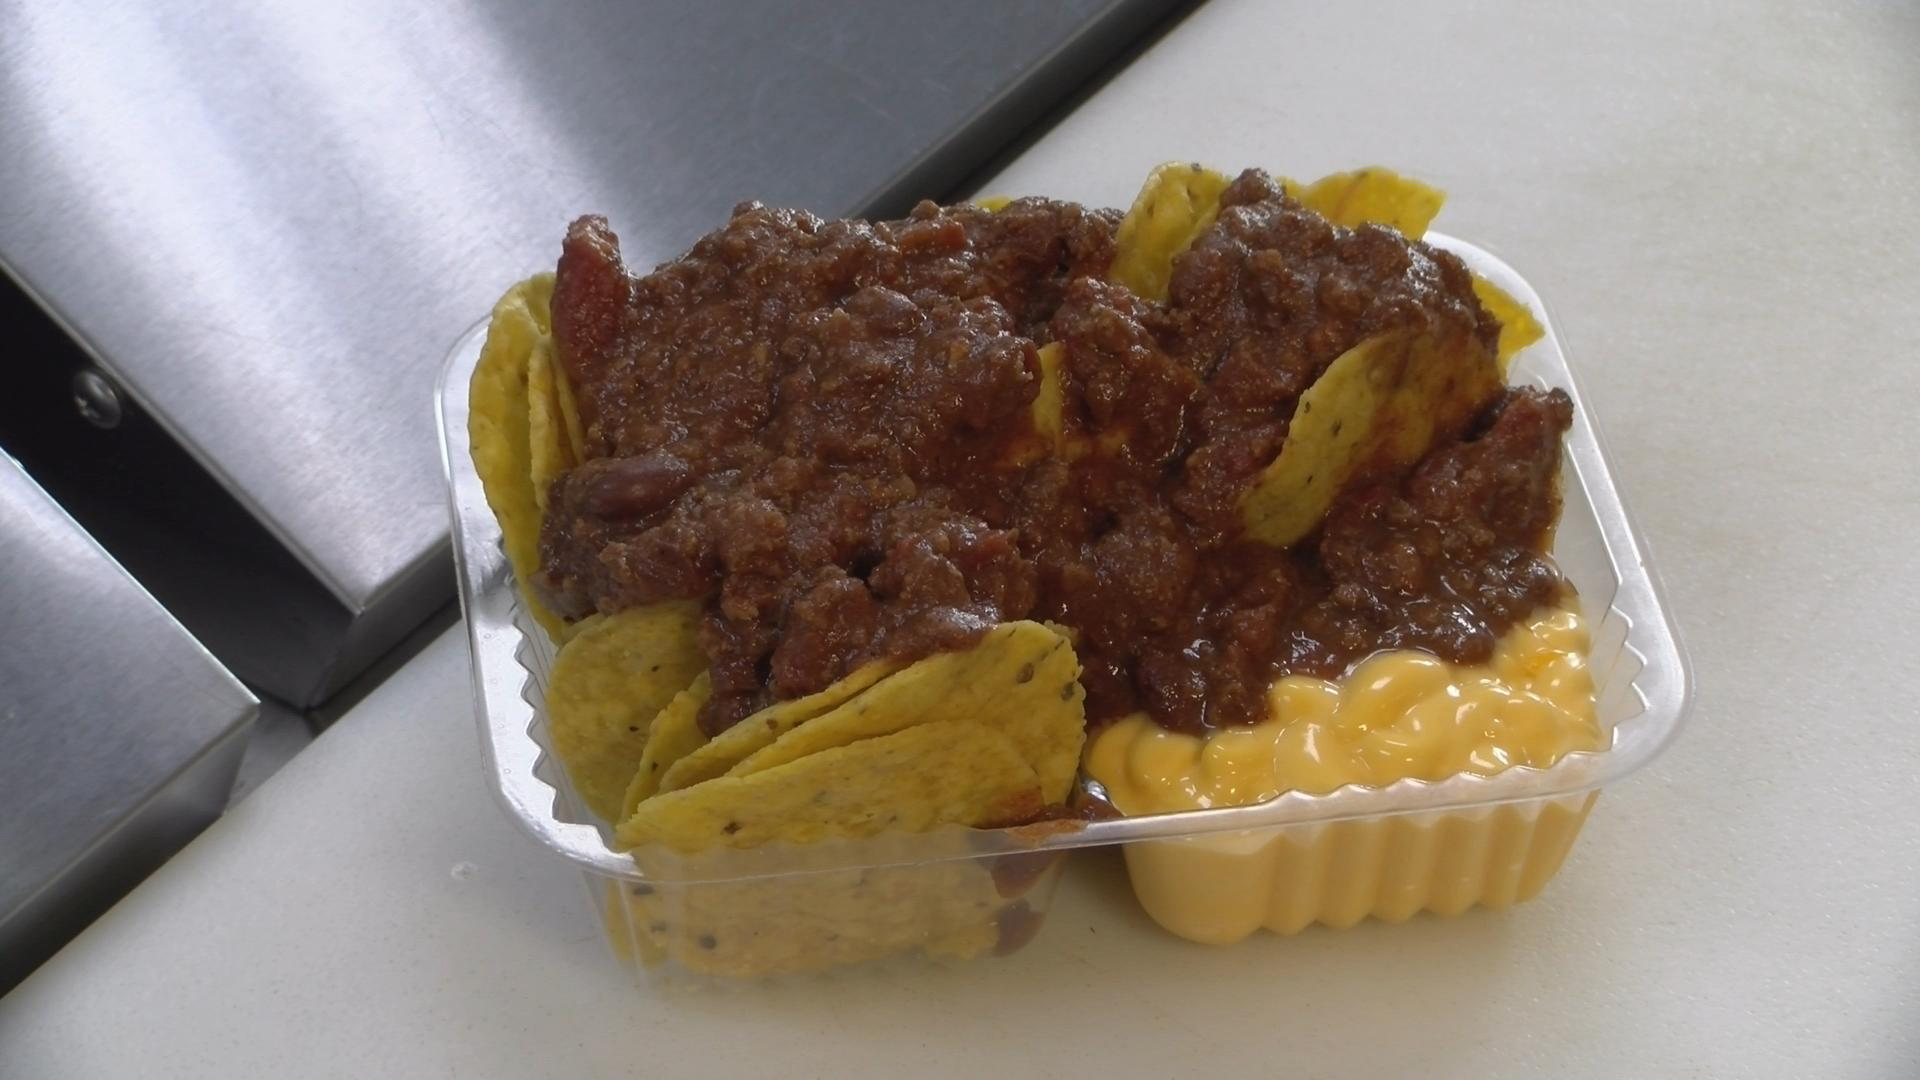 OUTPOST FOOD CHIPS CHILI